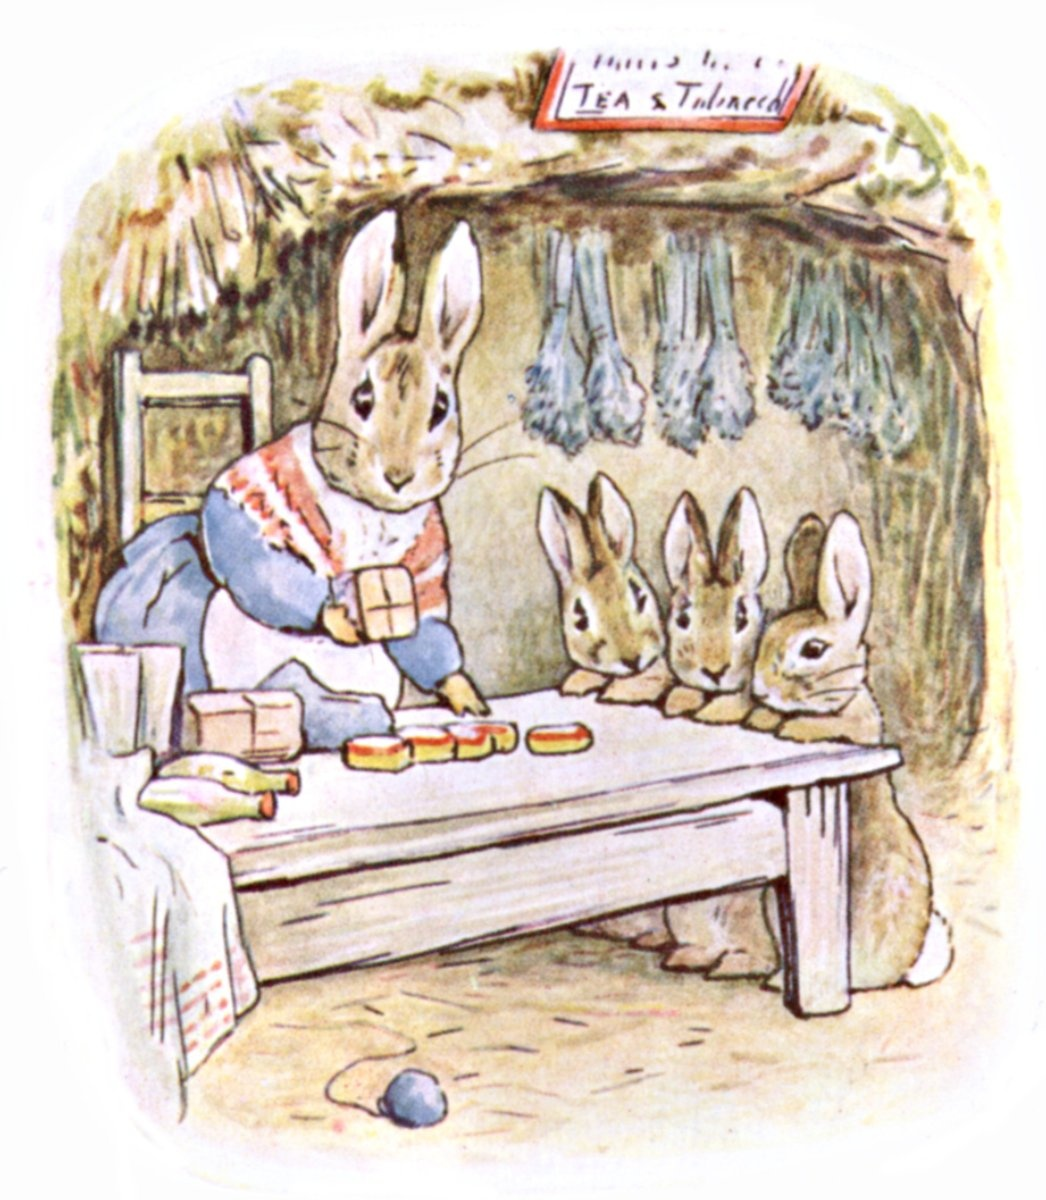 """Beatrix Potter, Illustration from """"The Tale of Peter Rabbit"""", 1901. Image via Wikimedia Commons."""